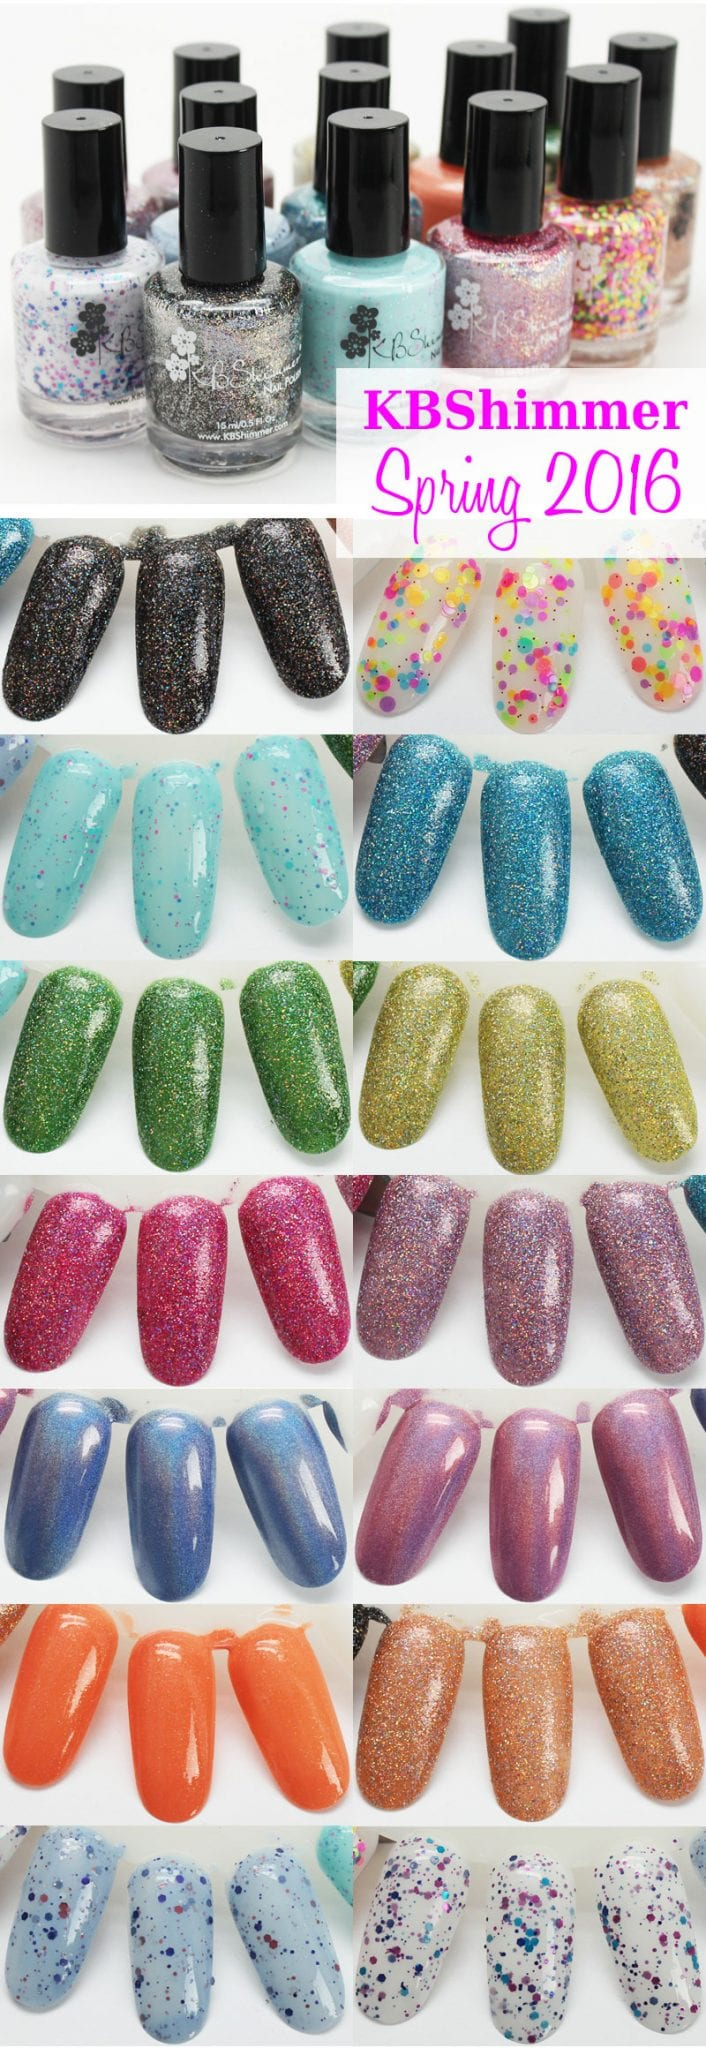 KBShimmer Spring 2016 Collection Review Swatches Video